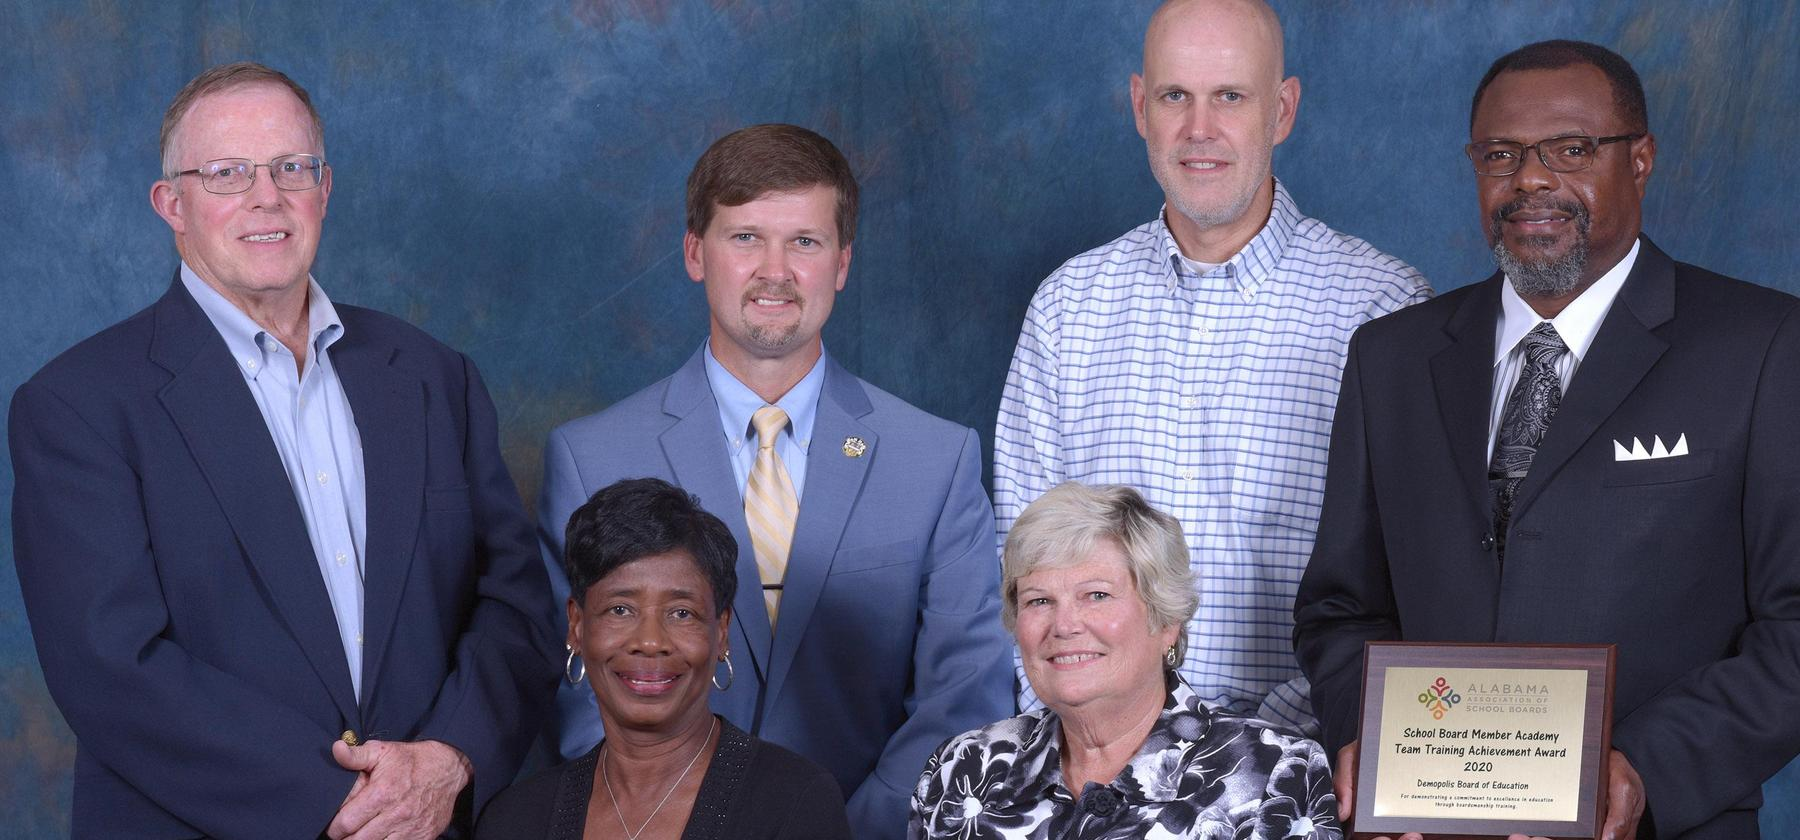 Demopolis City School System Board of Education